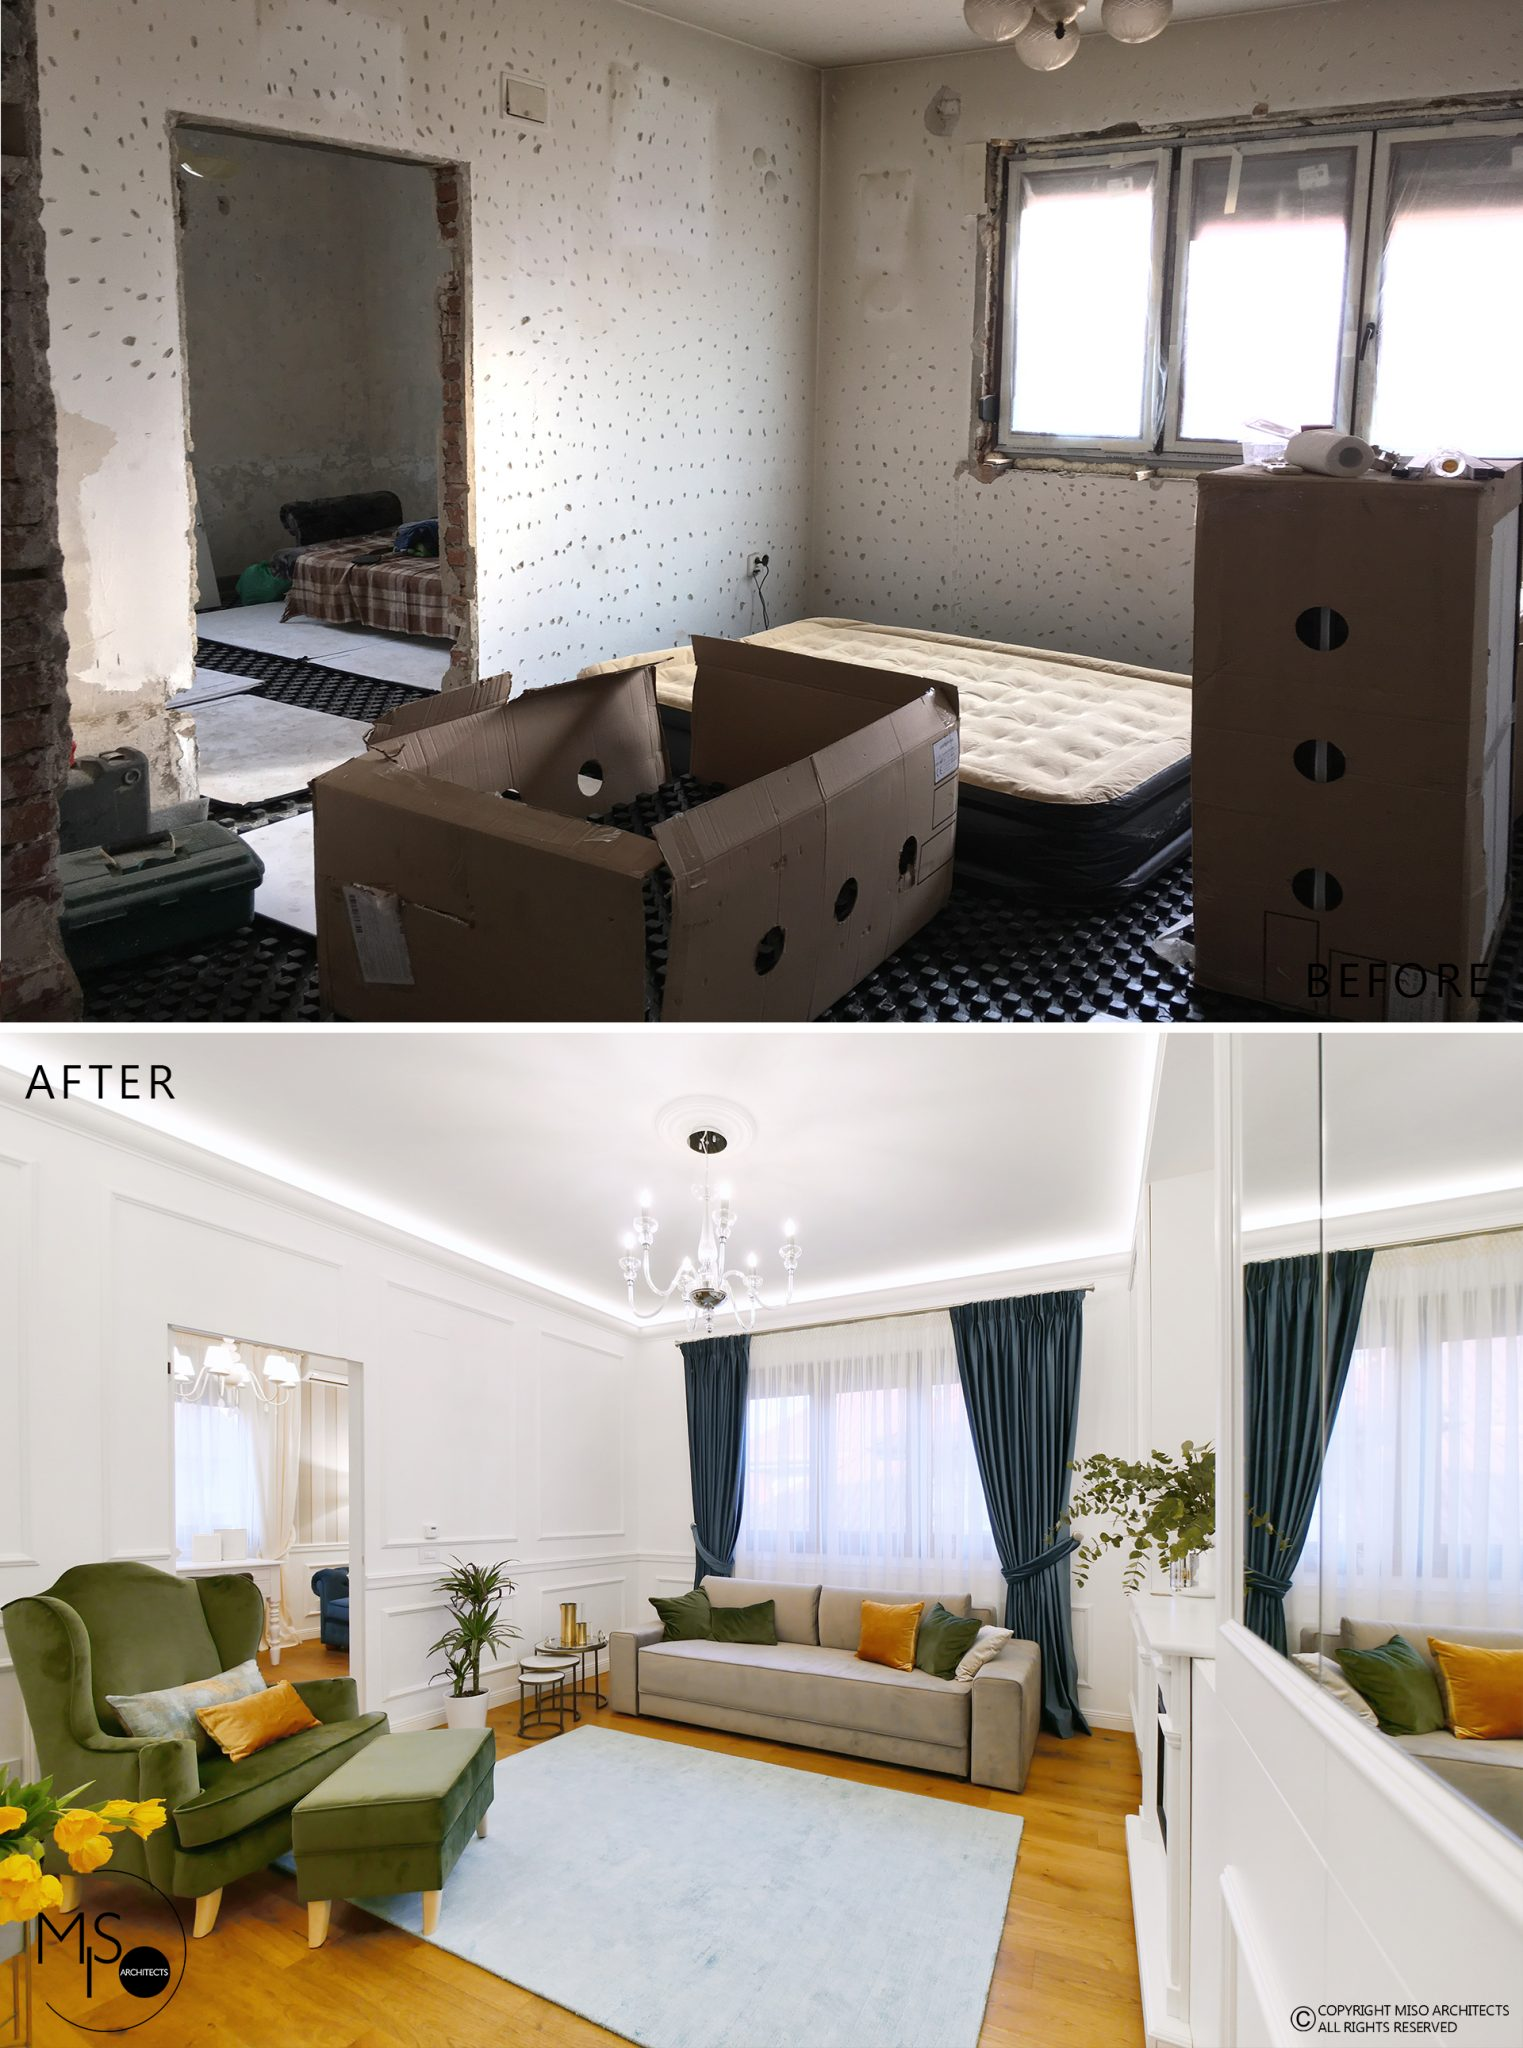 Miso-Architects_Ap.-Ciprian-Cotroceni-before-after_living01.jpg